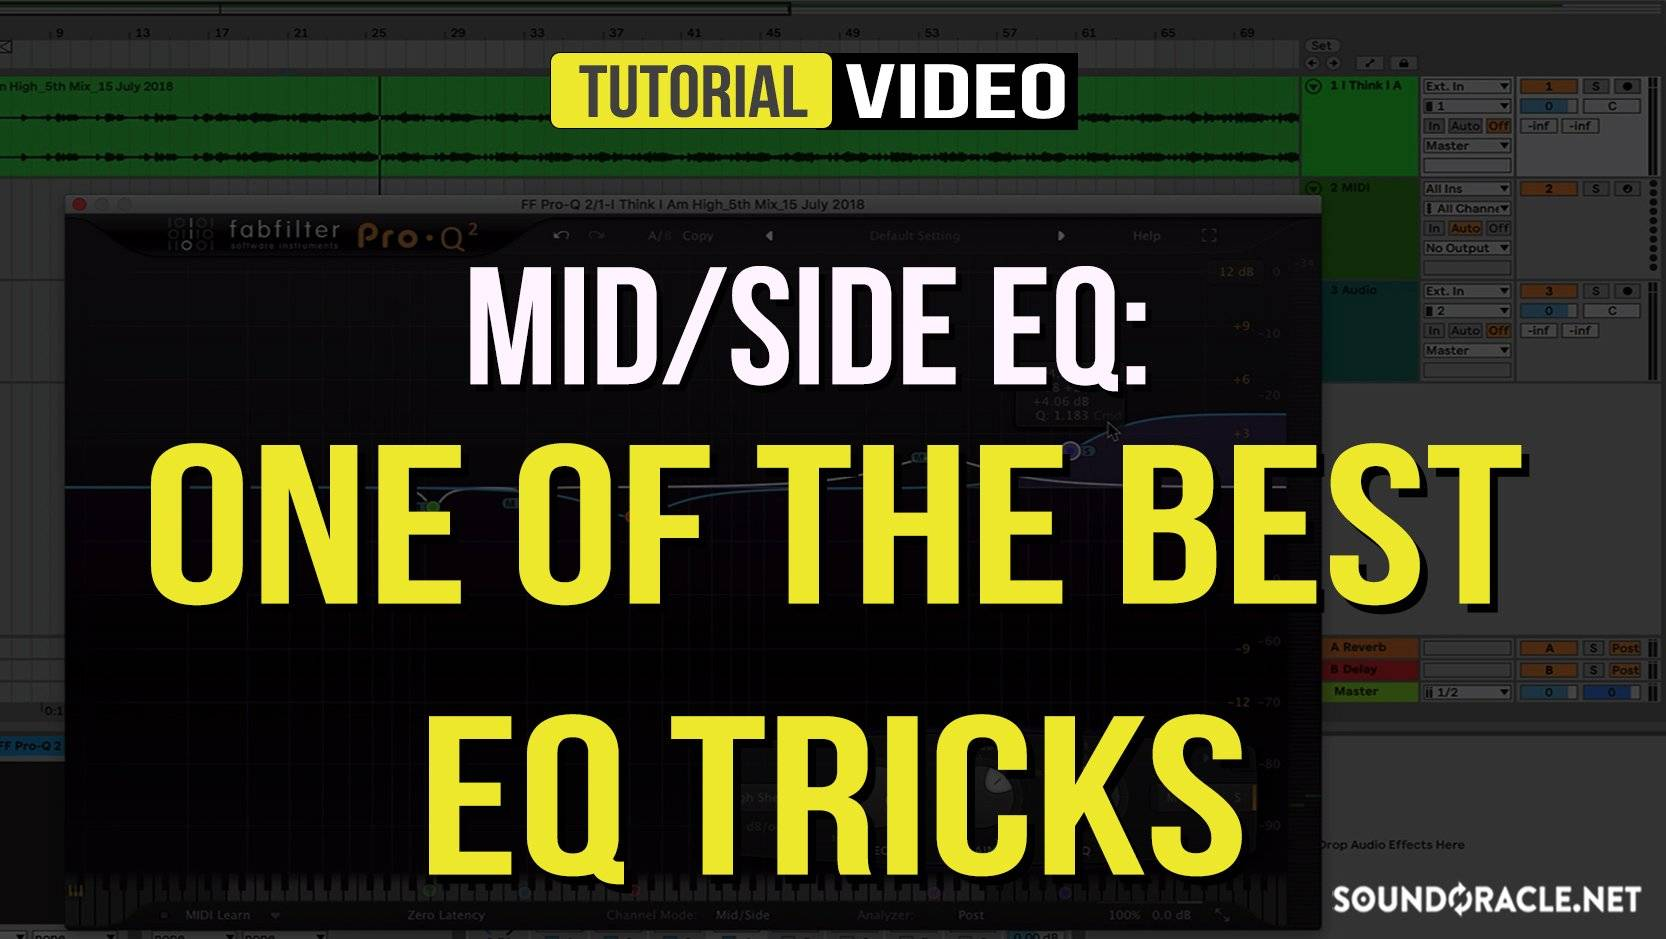 Mid/Side EQ: One Of The Best EQ Tricks